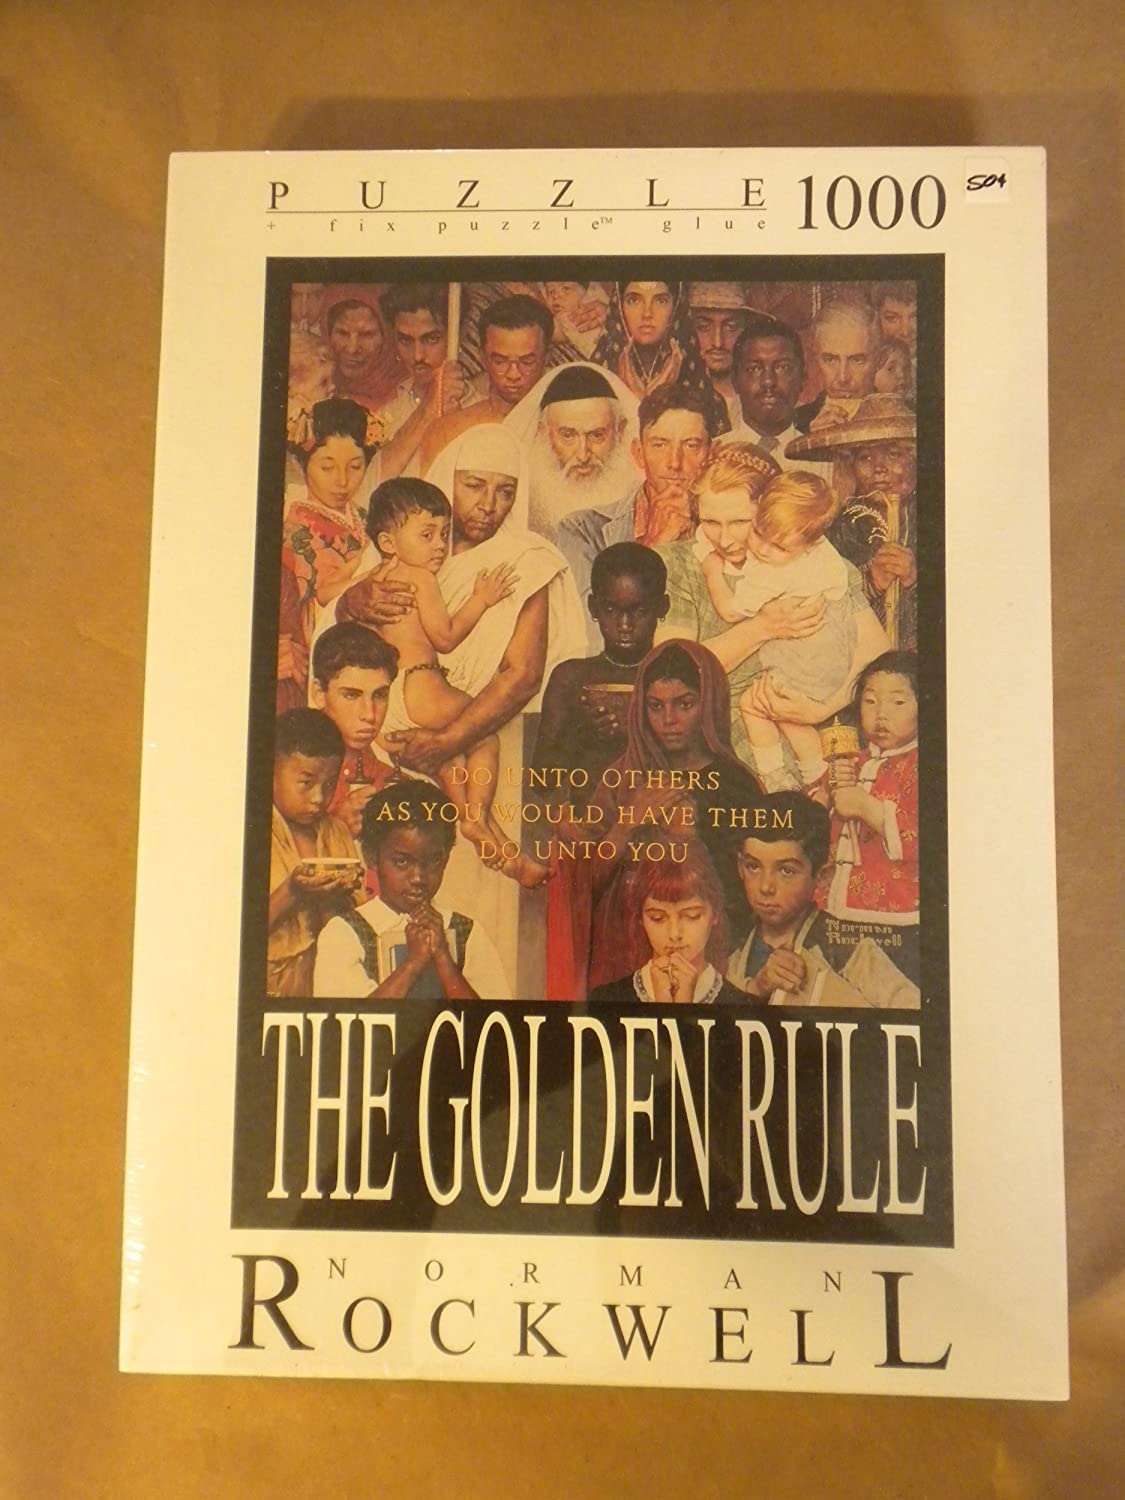 THE GOLDEN RULE by NORMAN ROCKWELL (JIGSAW PUZZLE OF 1000 PIECES WITH FIX PUZZLE GLUE)